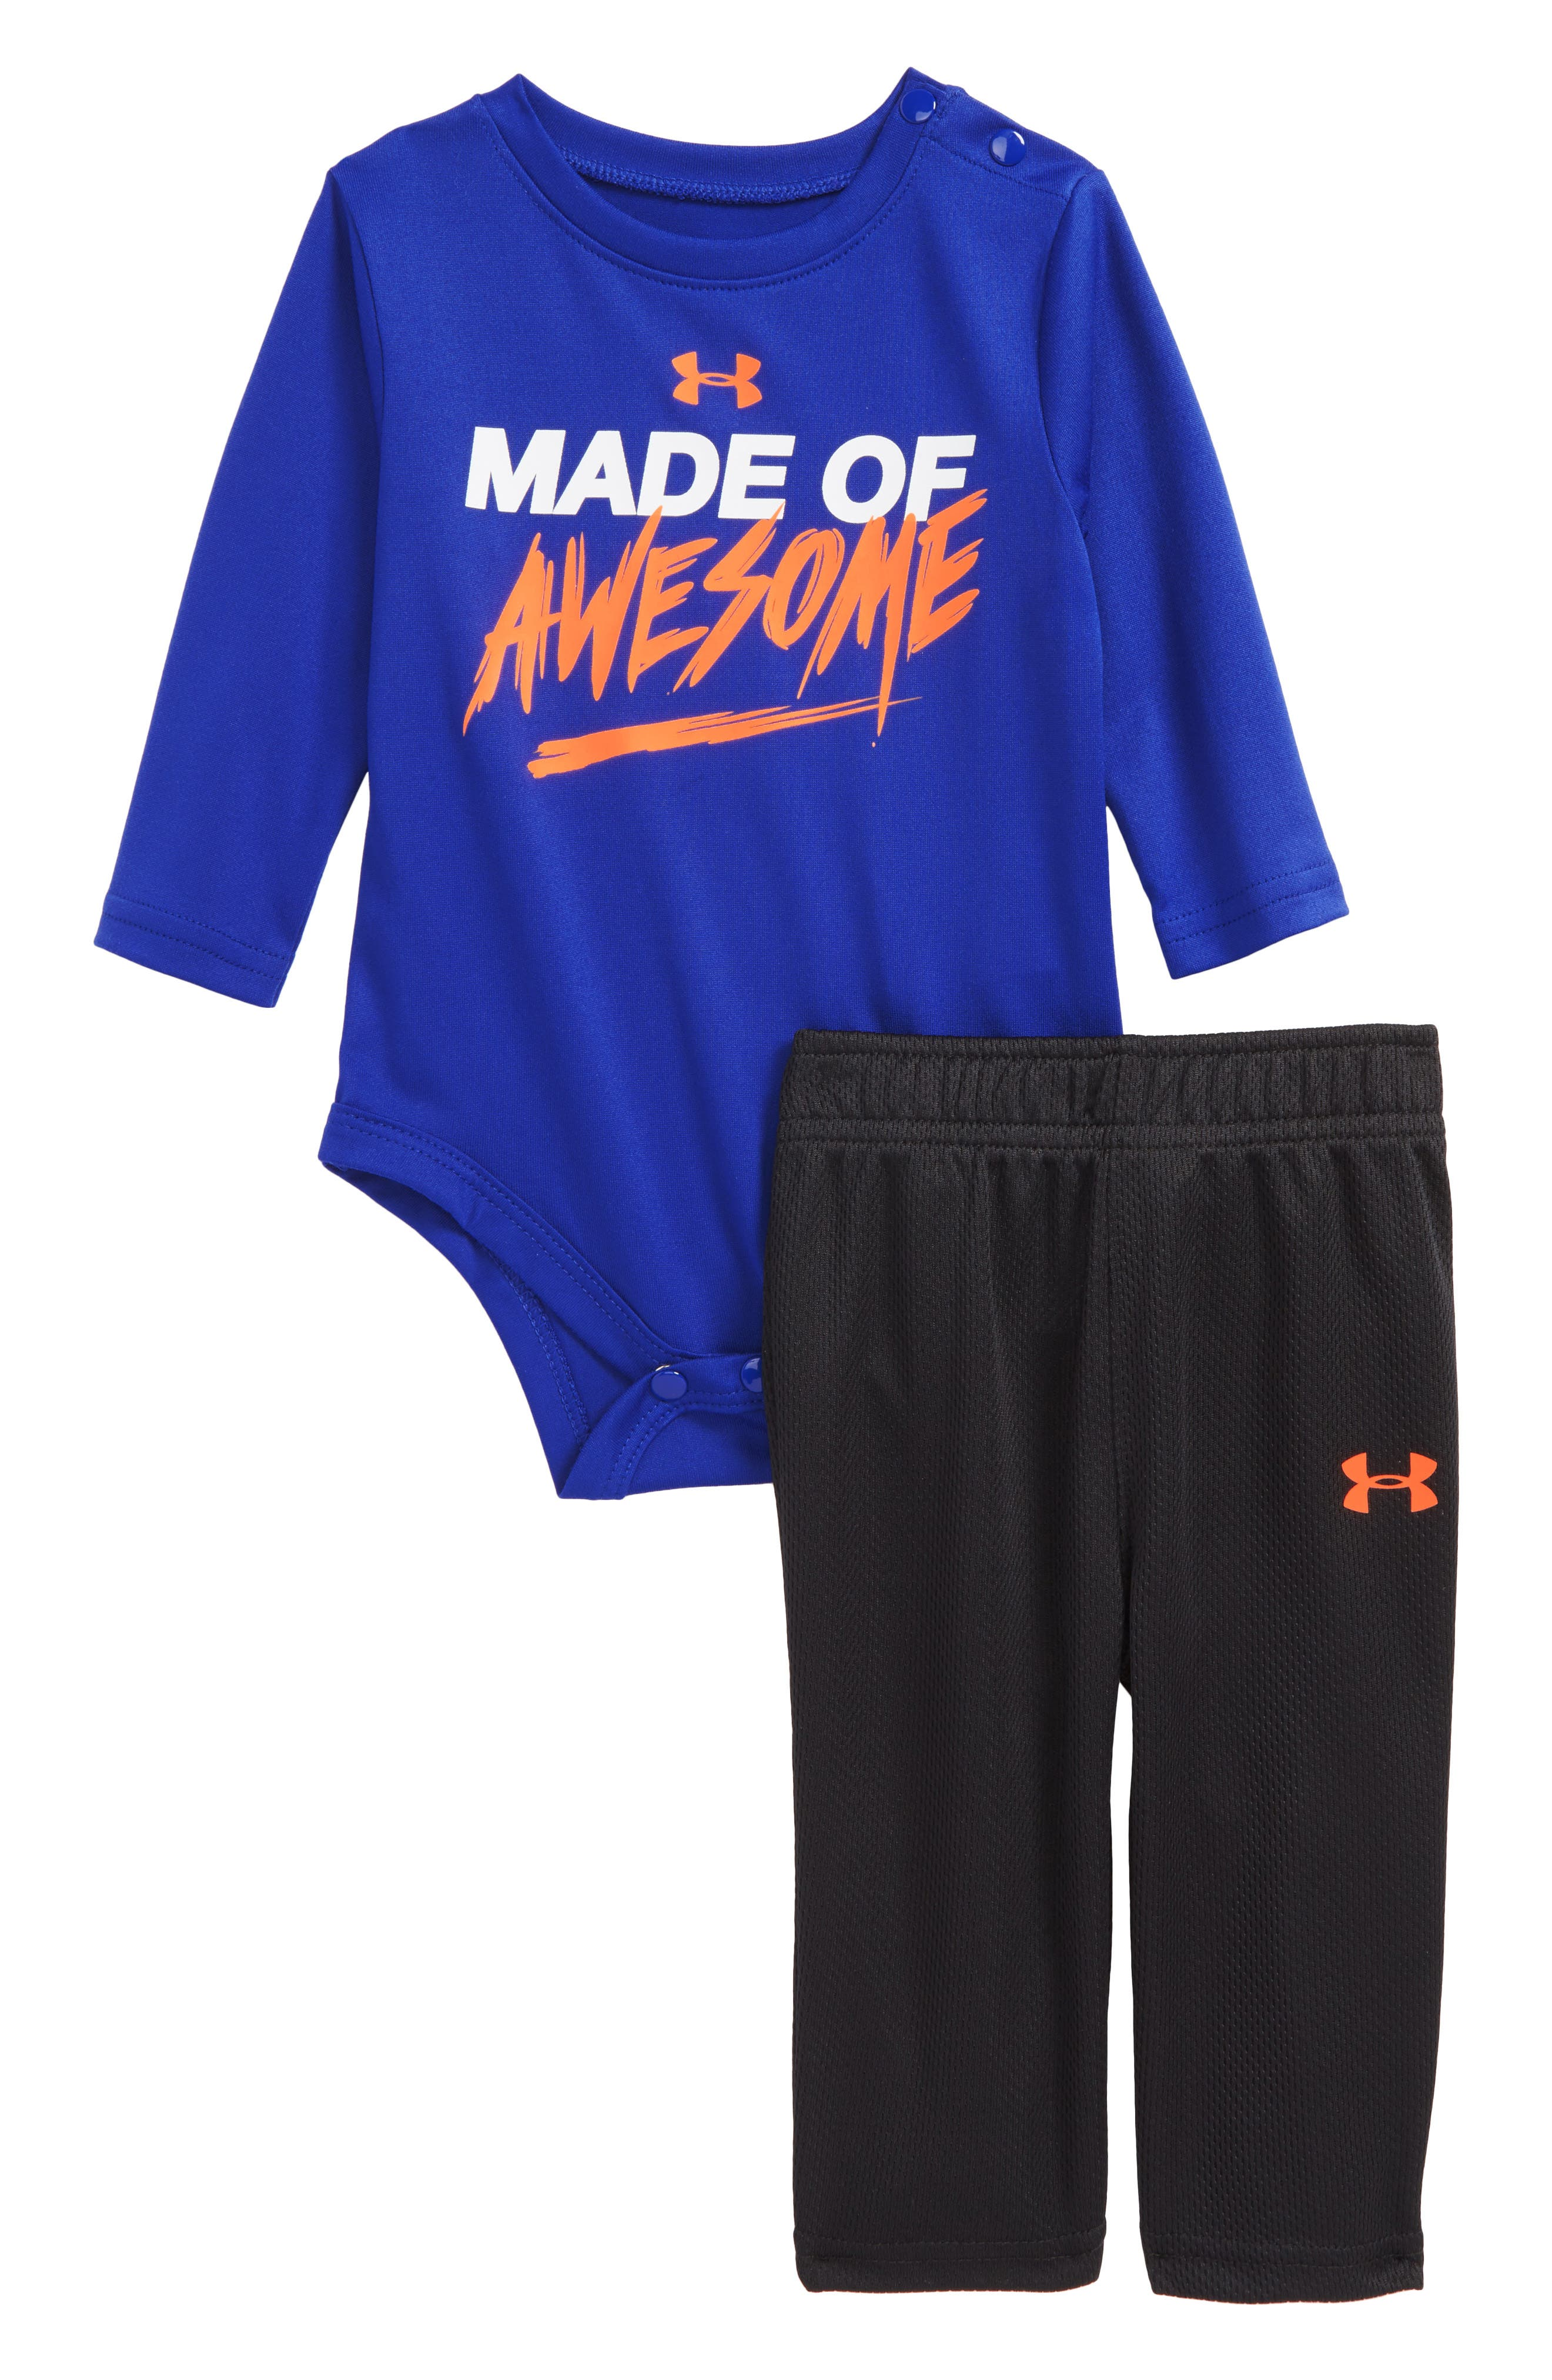 Under Armour Made of Awesome Graphic Bodysuit & Sweatpants Set (Baby Boys)